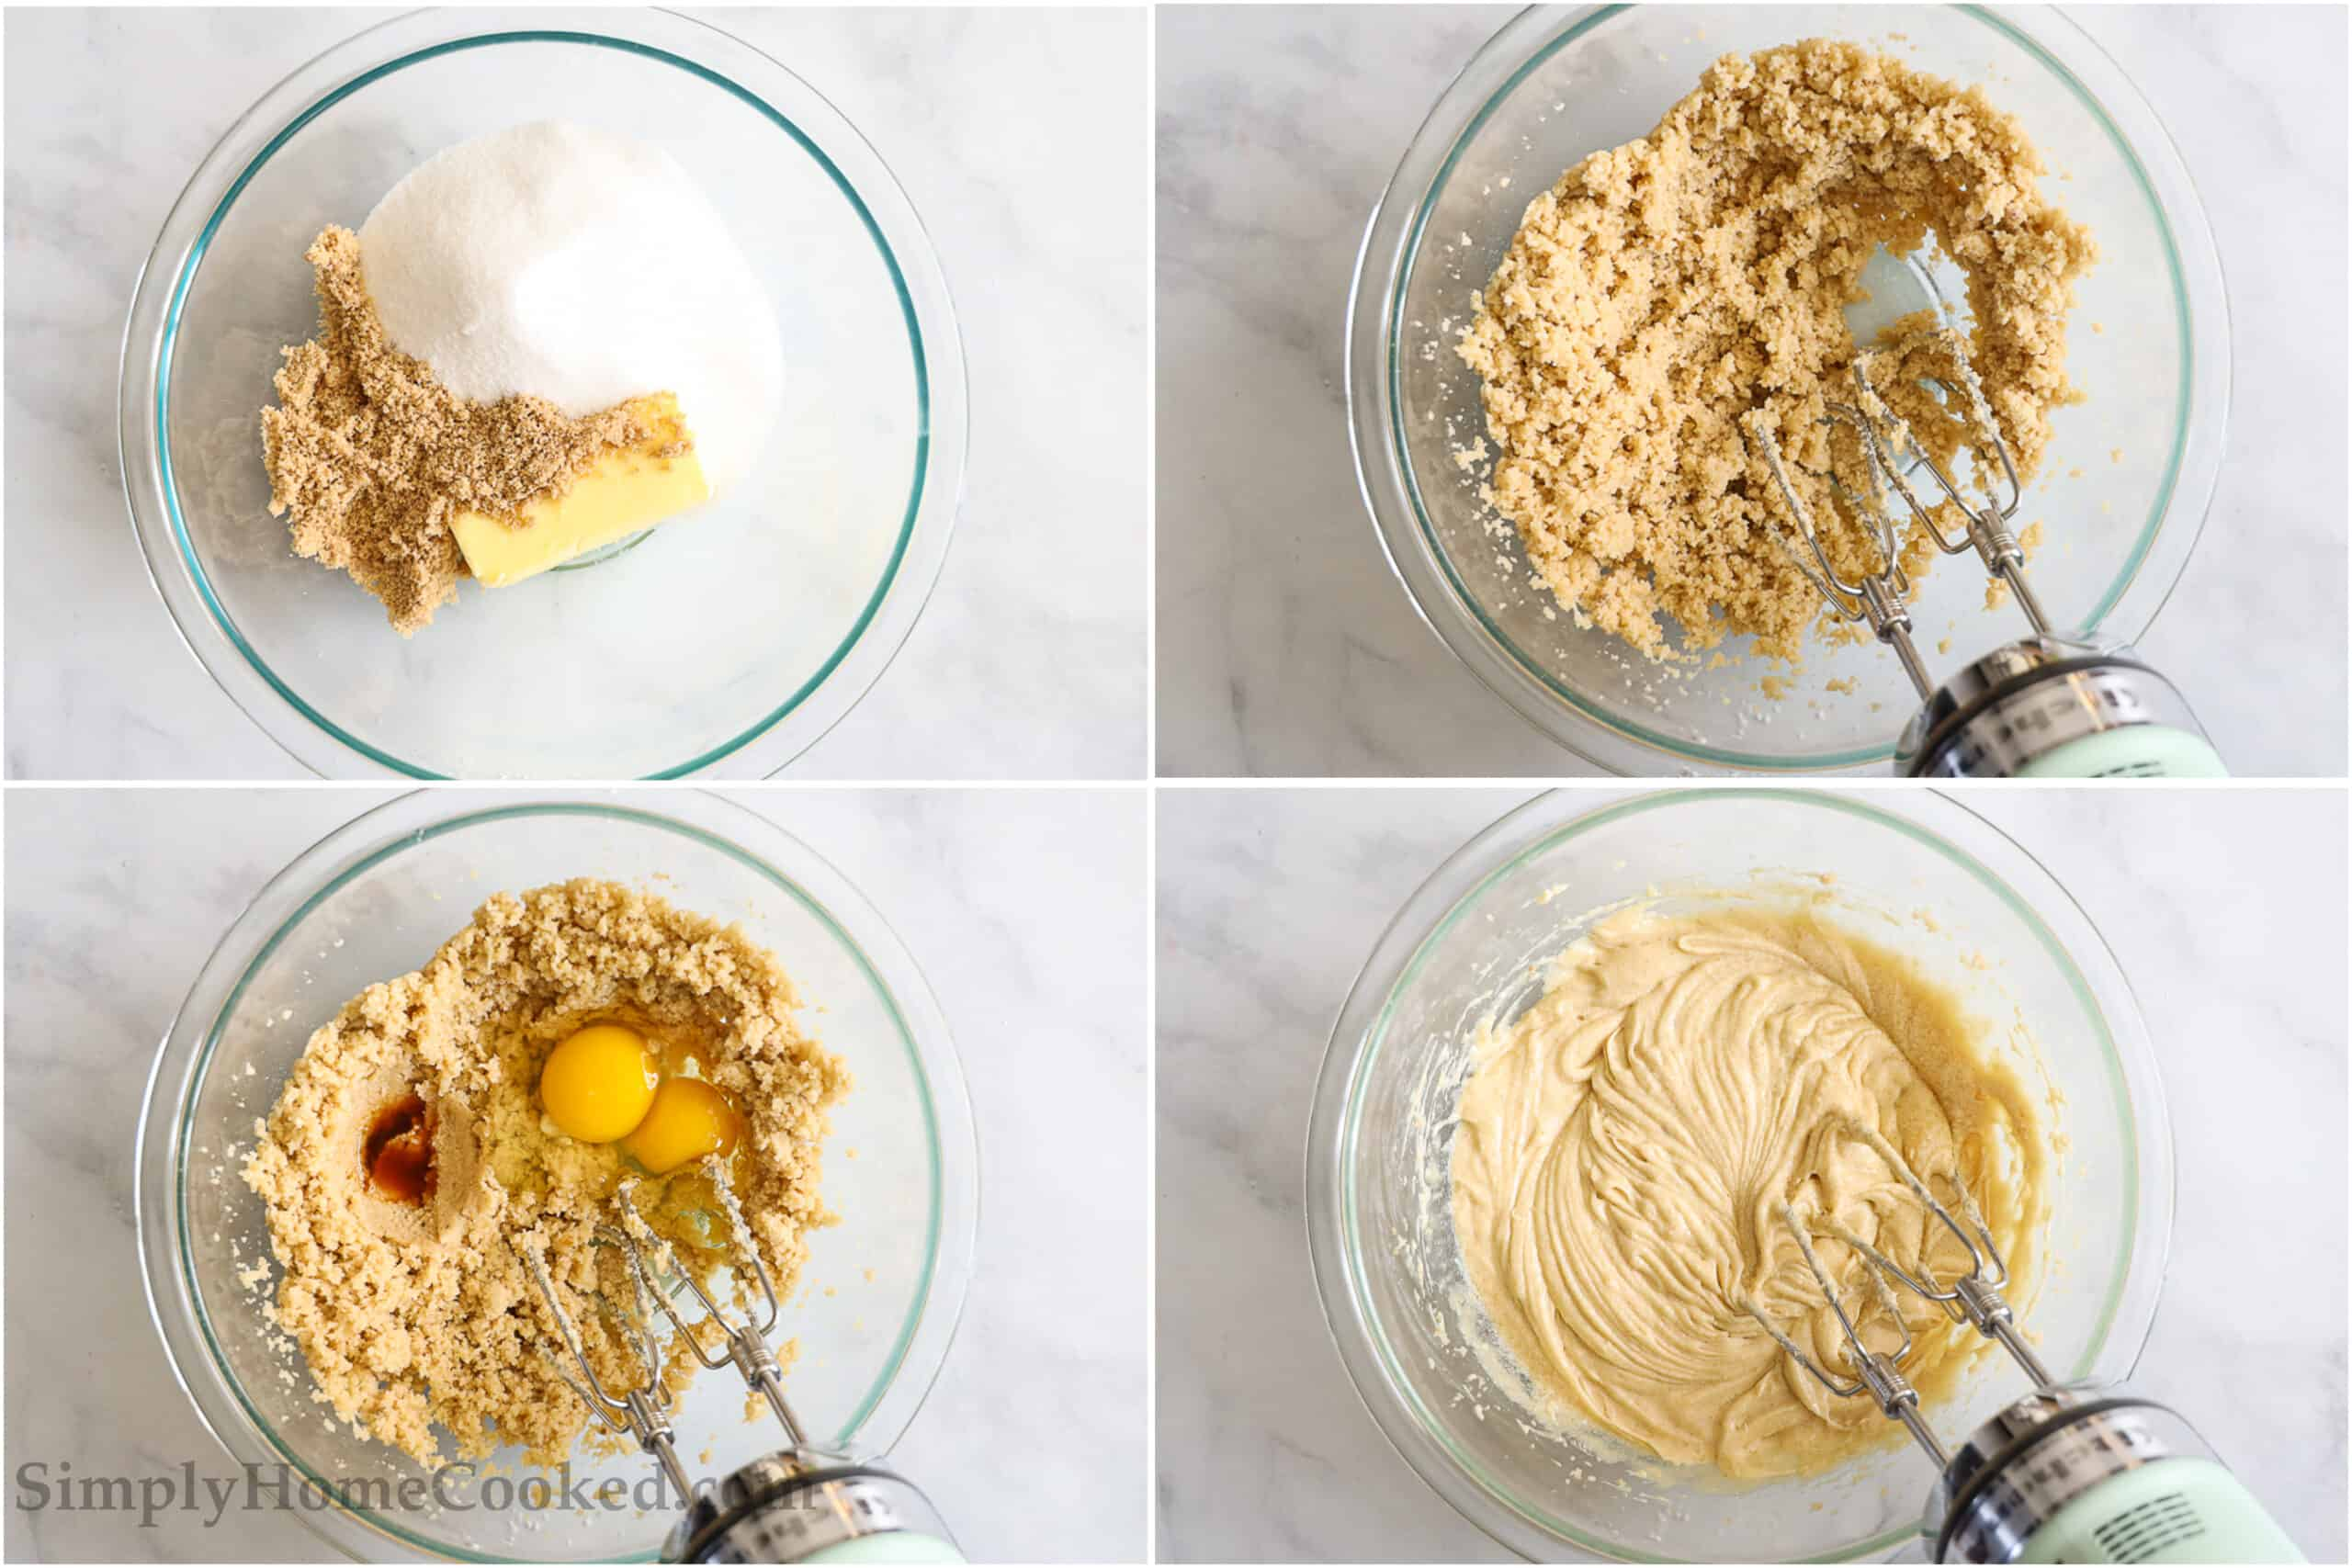 Steps to make Apple Fritter Bread, including mixing the butter and sugars, then beating in the eggs and vanilla with an electric hand mixer.